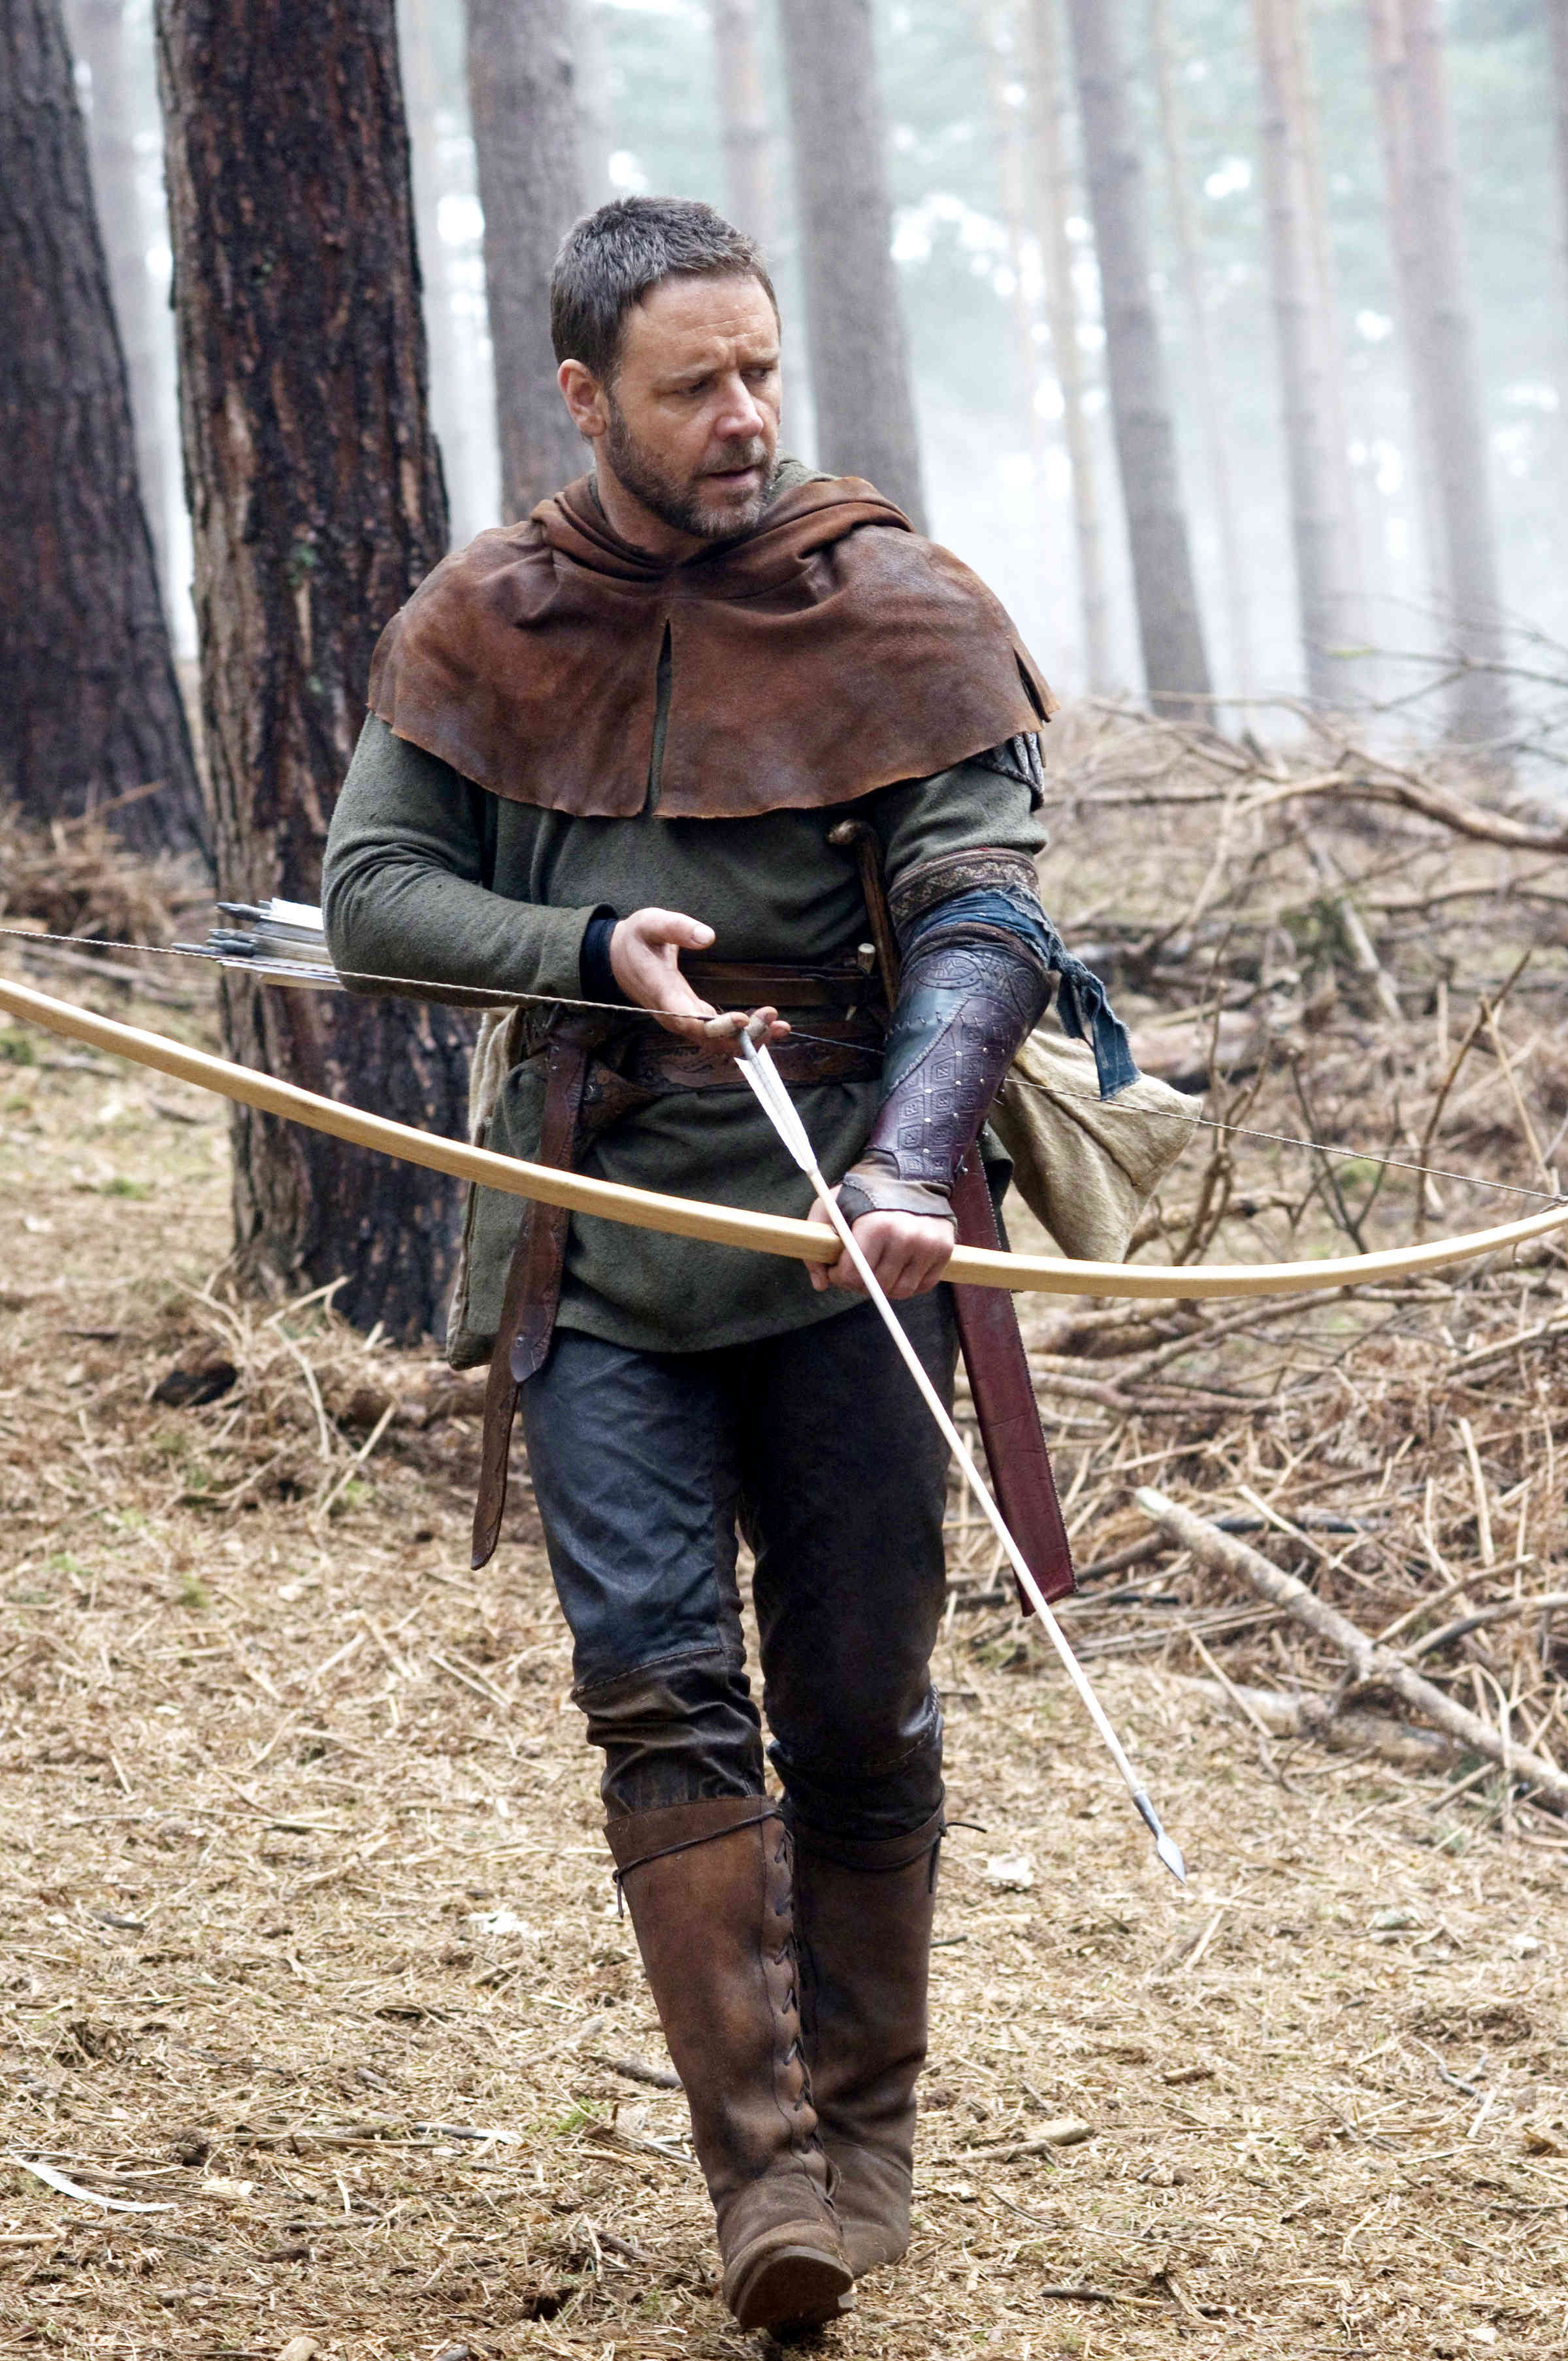 1000+ images about Robin Hood on Pinterest | Robin hoods ...